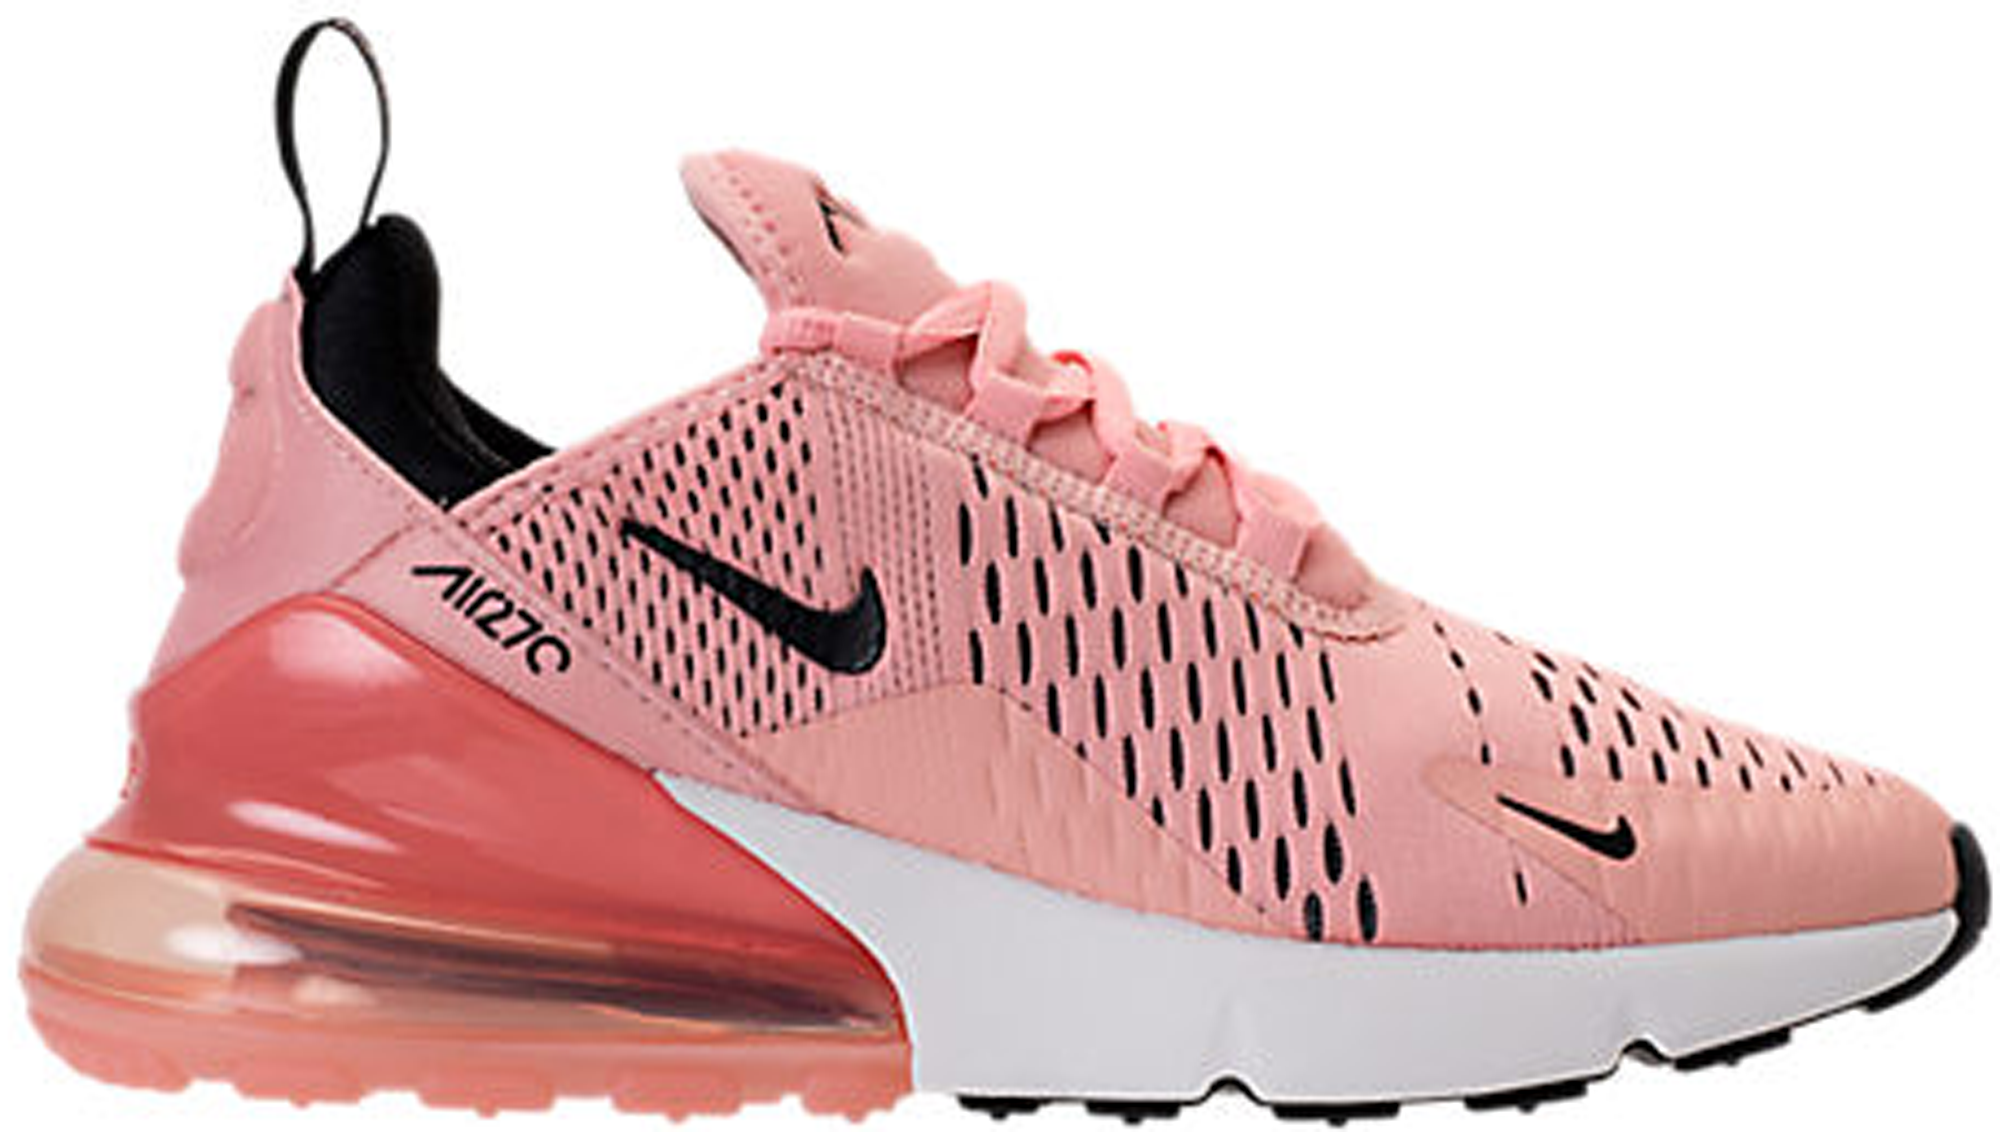 Details about Nike Women's Air Max 270 Coral Stardust, Size 8 LAST PAIR!